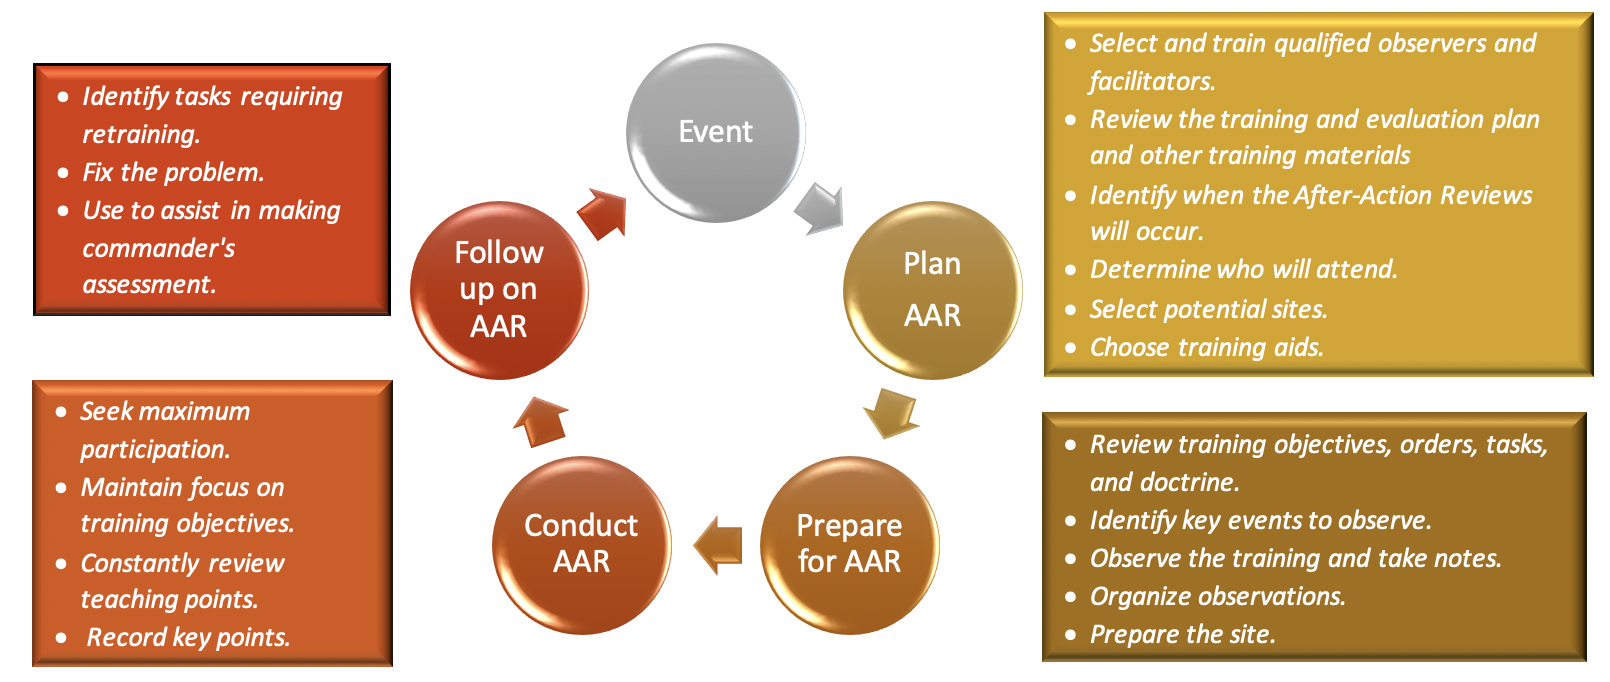 AAR diagram / flowchart